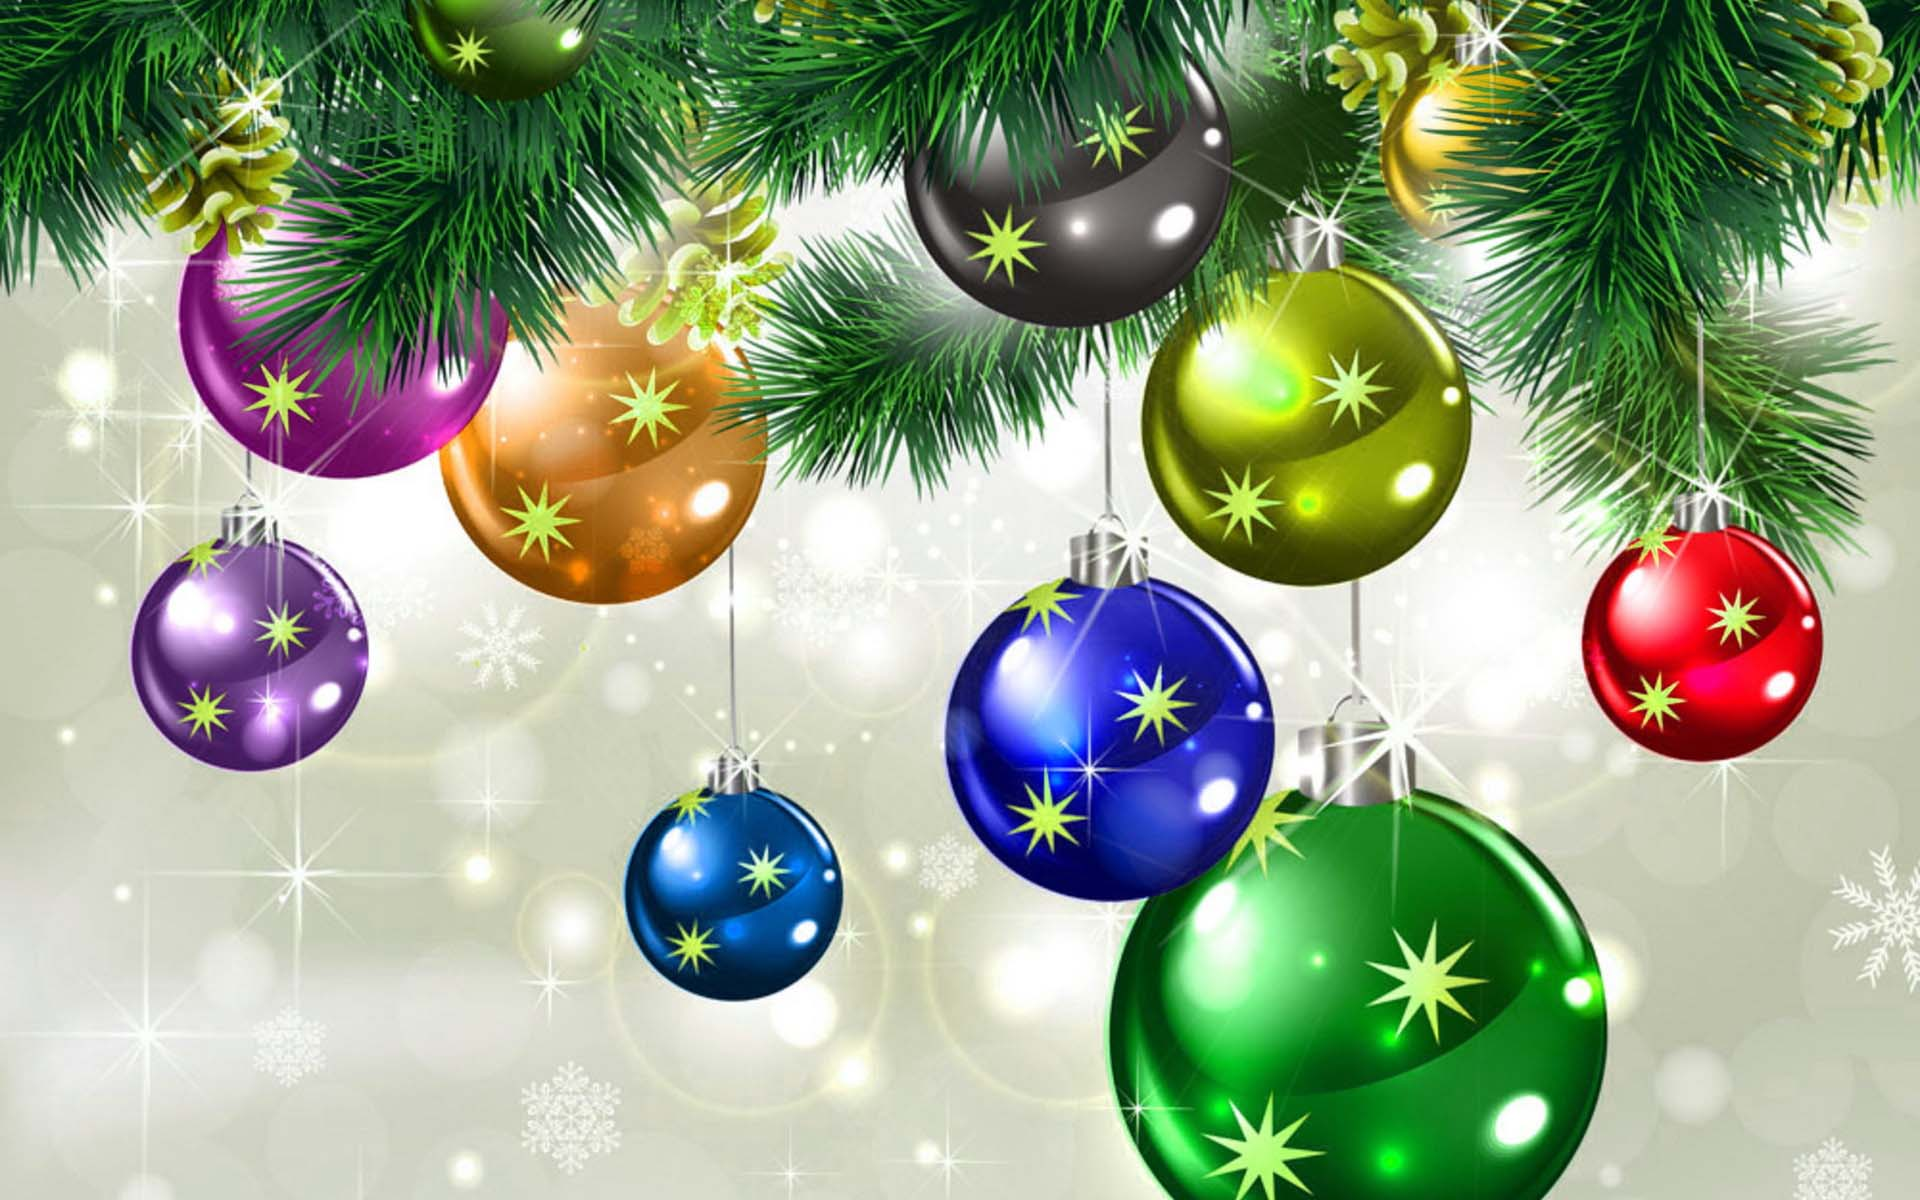 Christmas wallpaper 3d